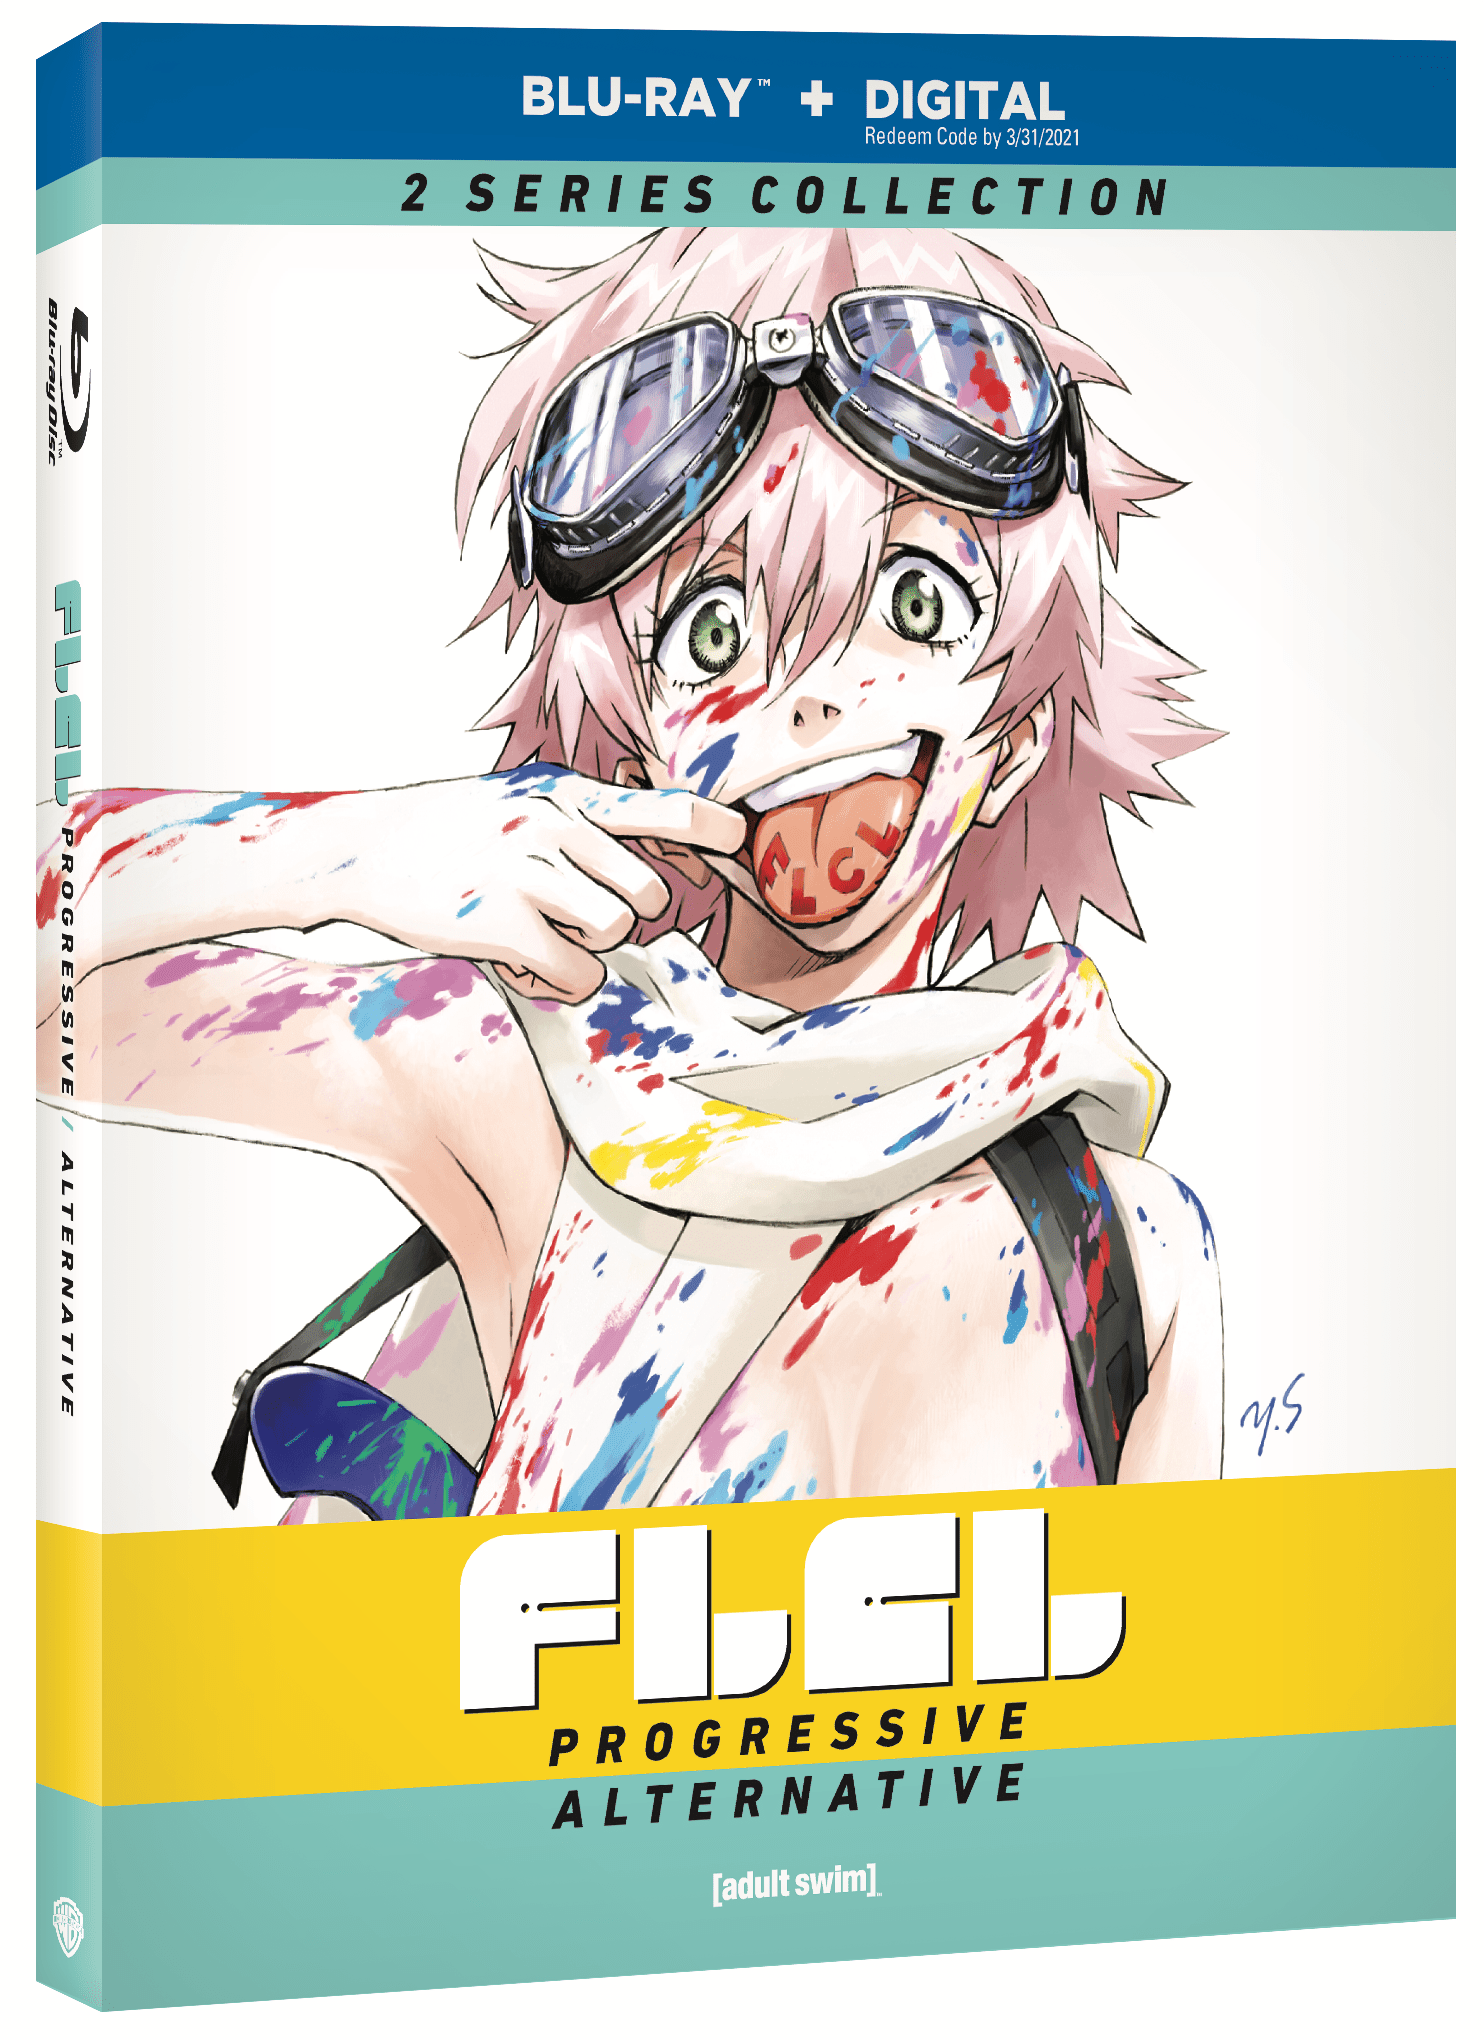 FLCL: Progressive and Alternative